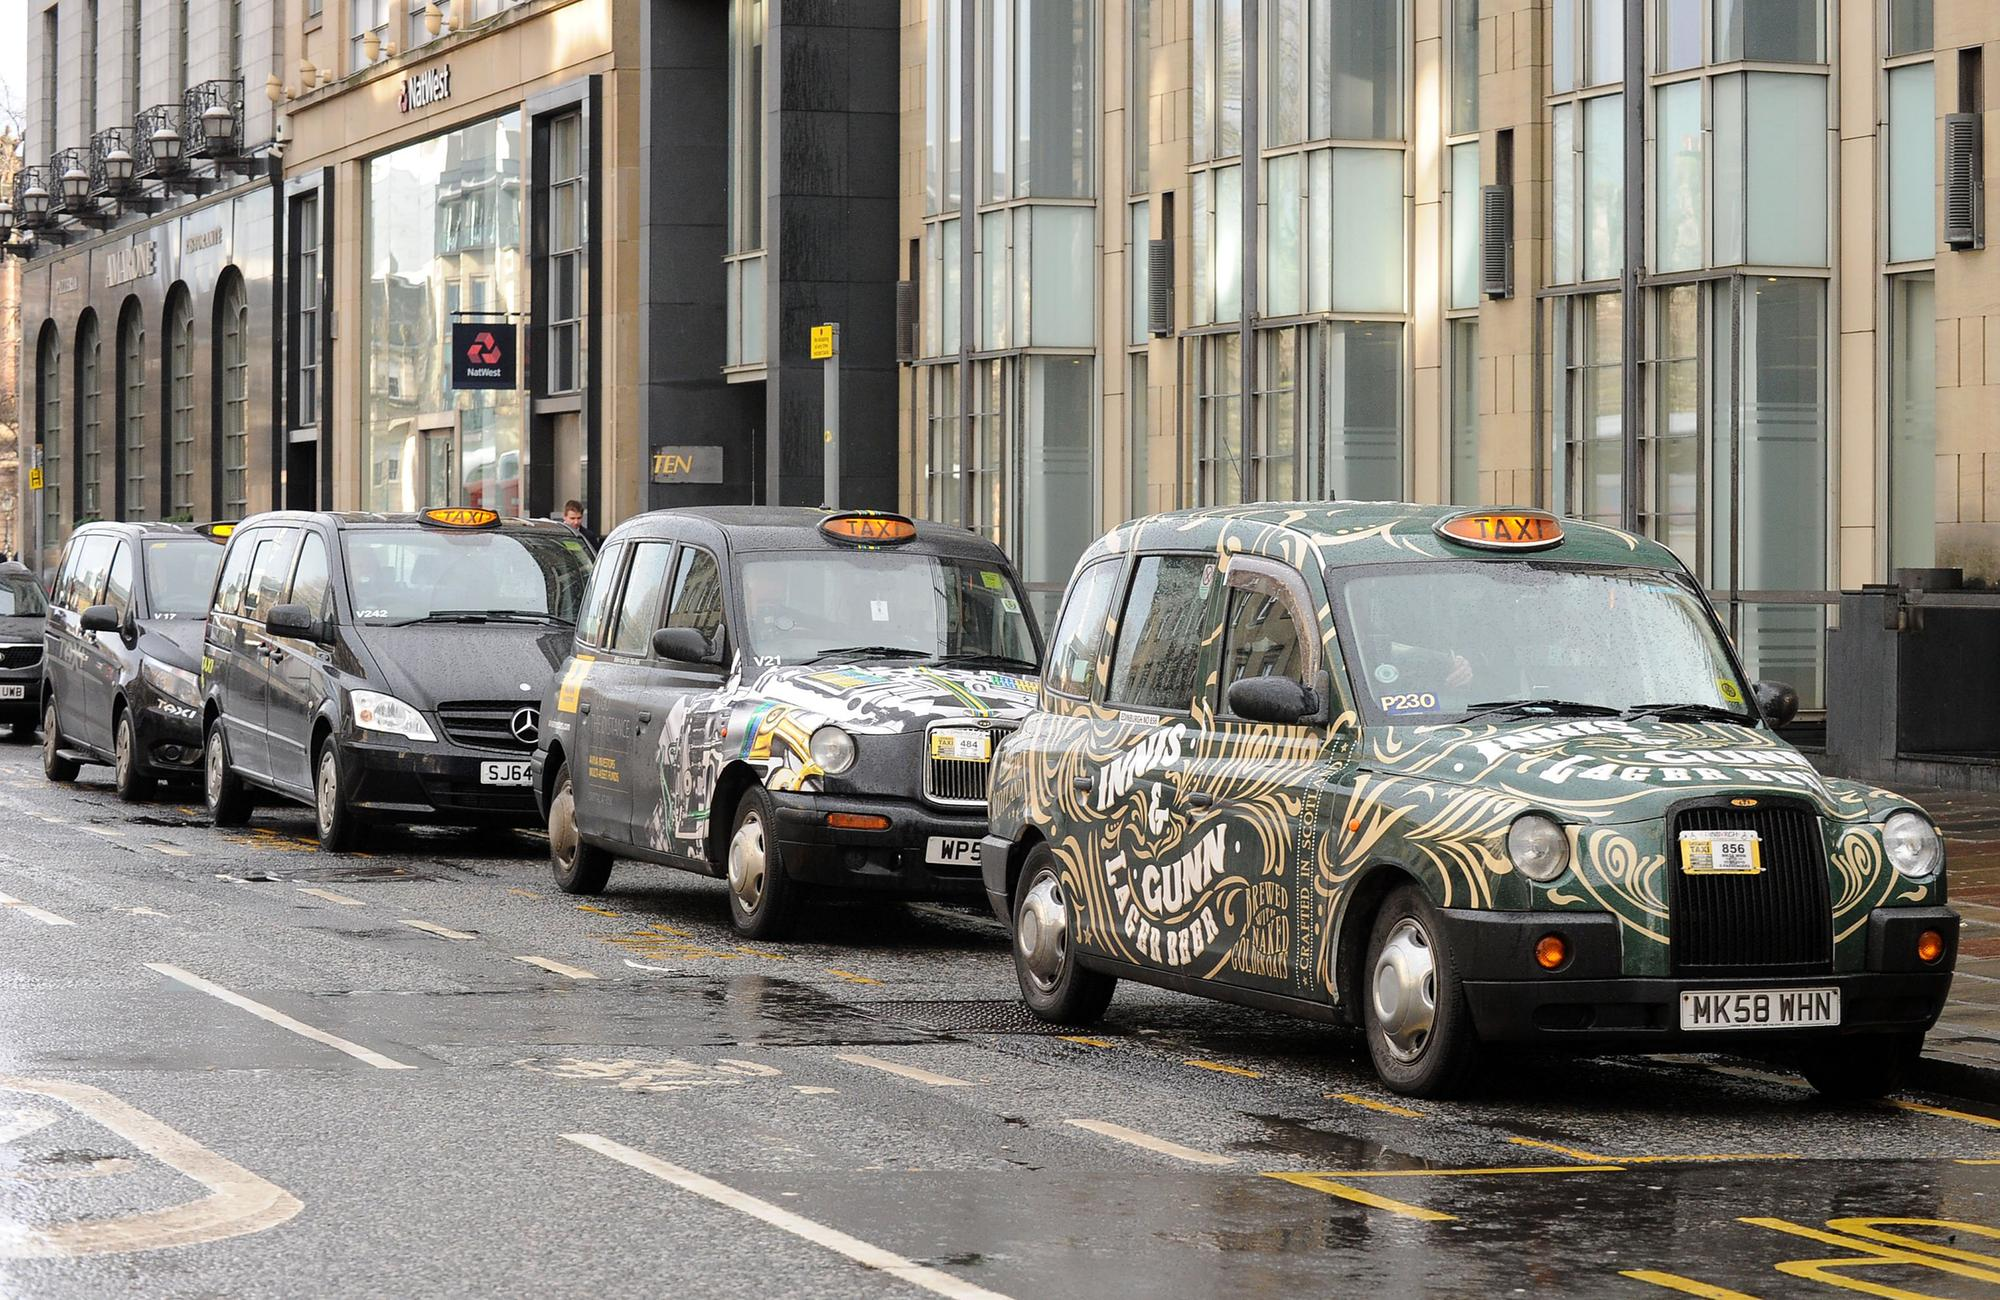 Taxi drivers being made to choose between test fees and feeding families by Edinburgh council